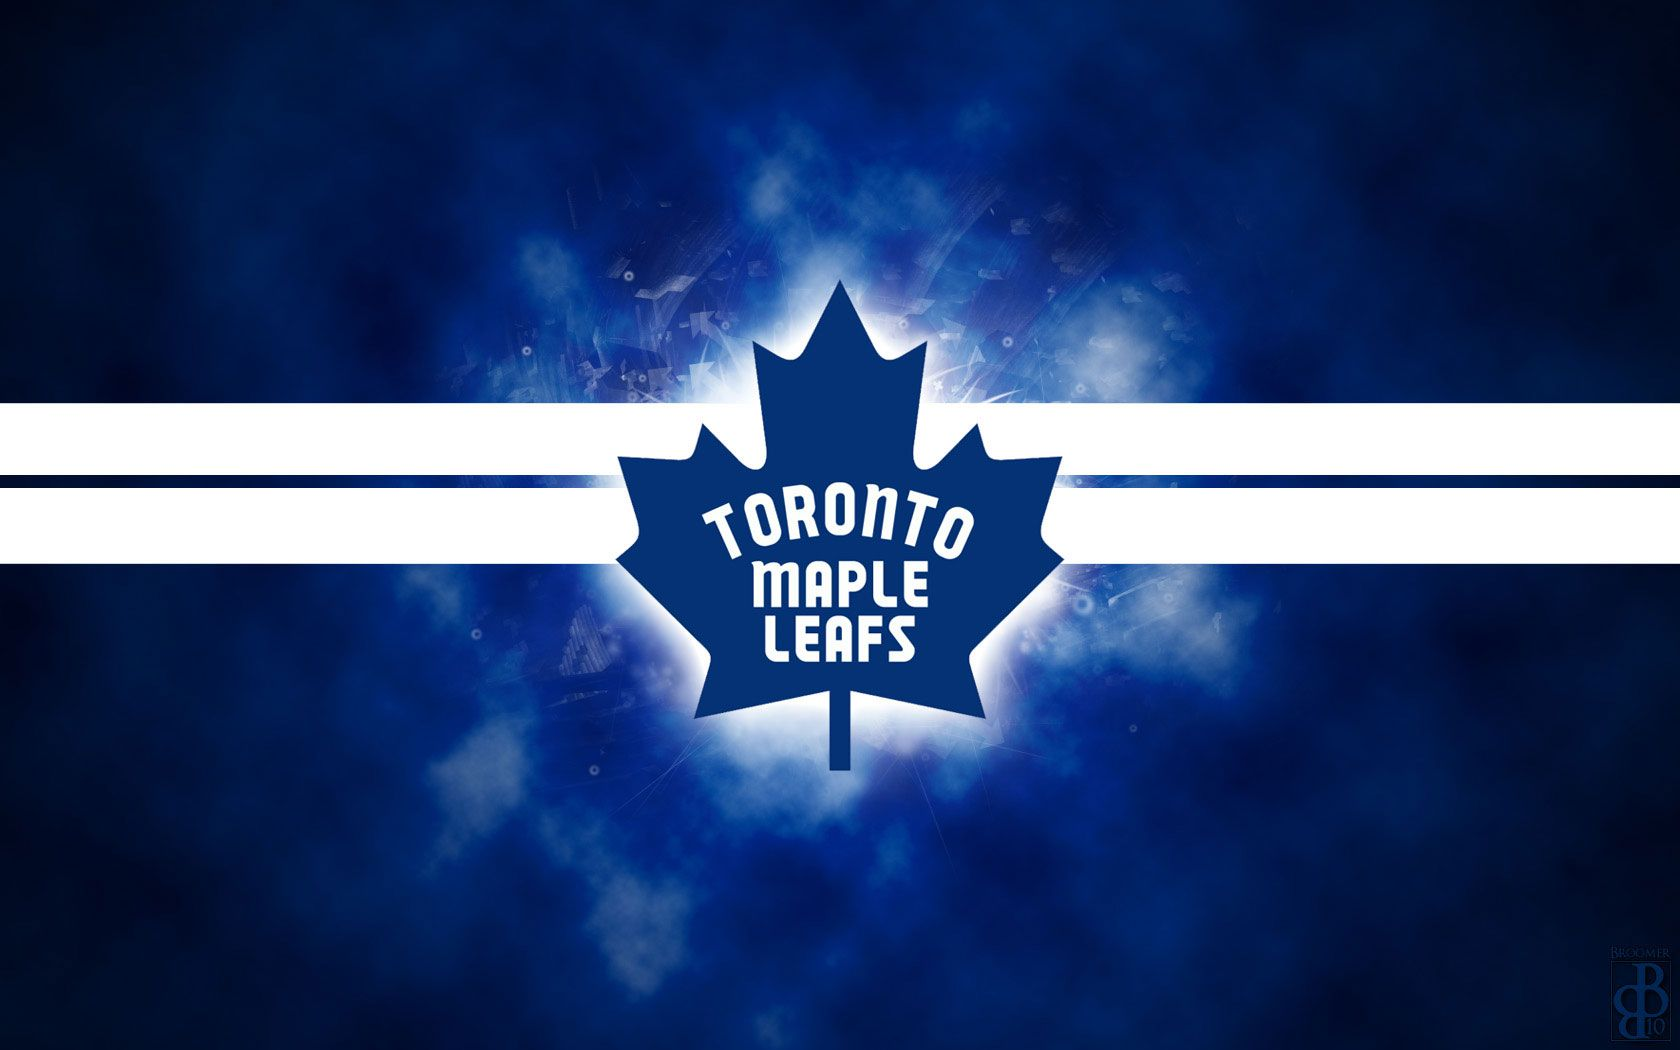 Nhl Wallpapers Toronto Maple Leafs Widescreen Wallpaper Maple Leafs Toronto Maple Nhl Wallpaper